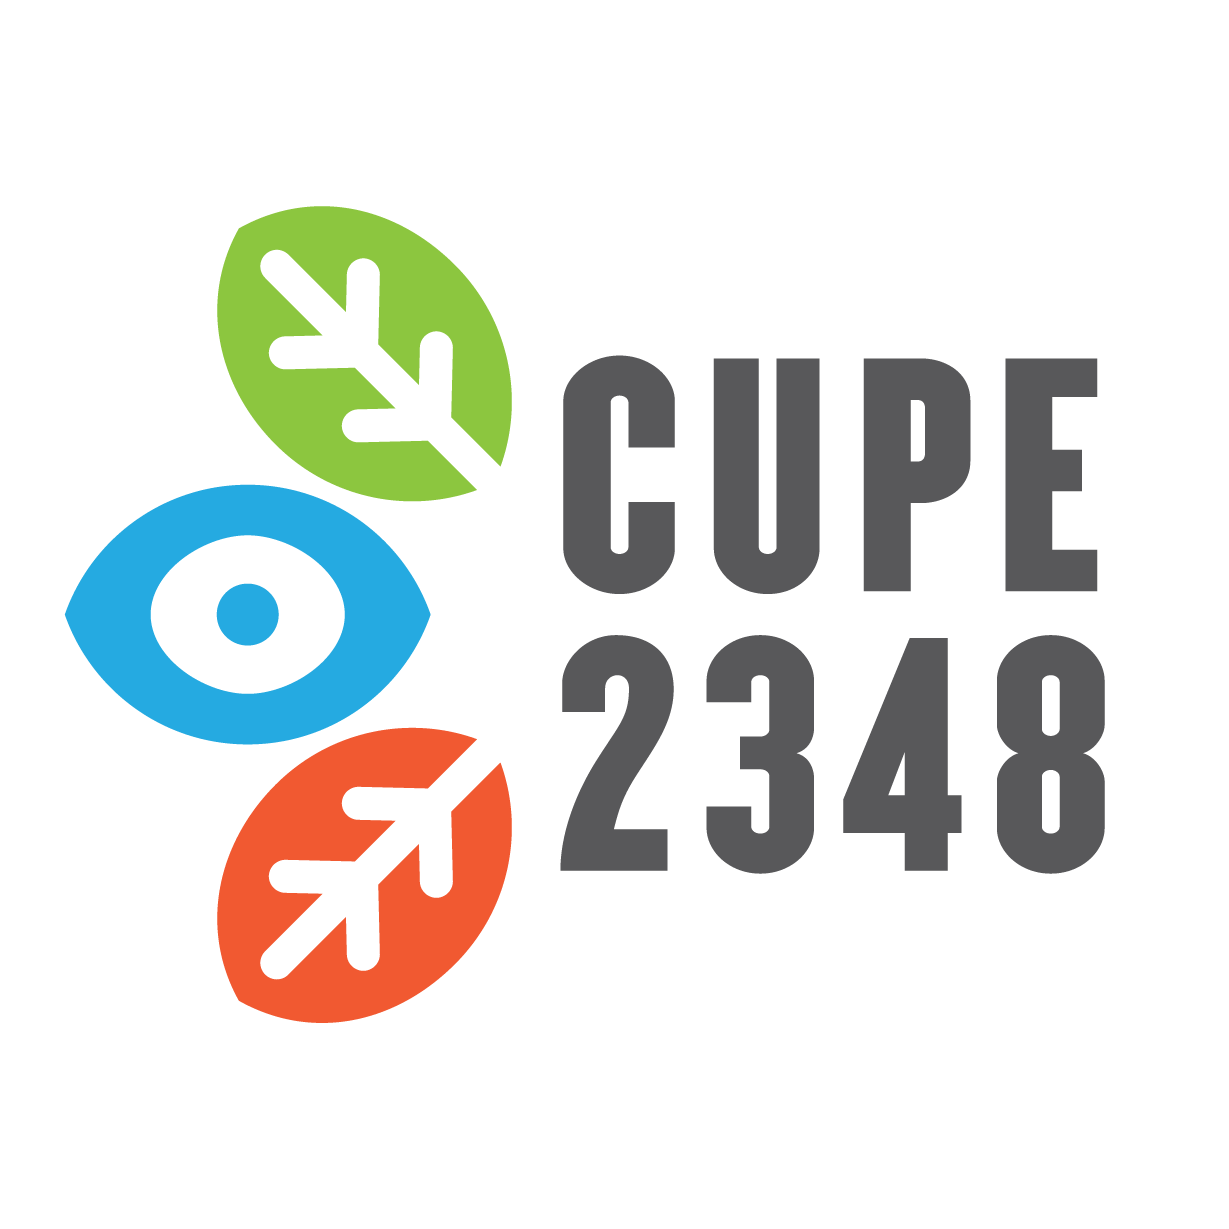 CUPE 2348